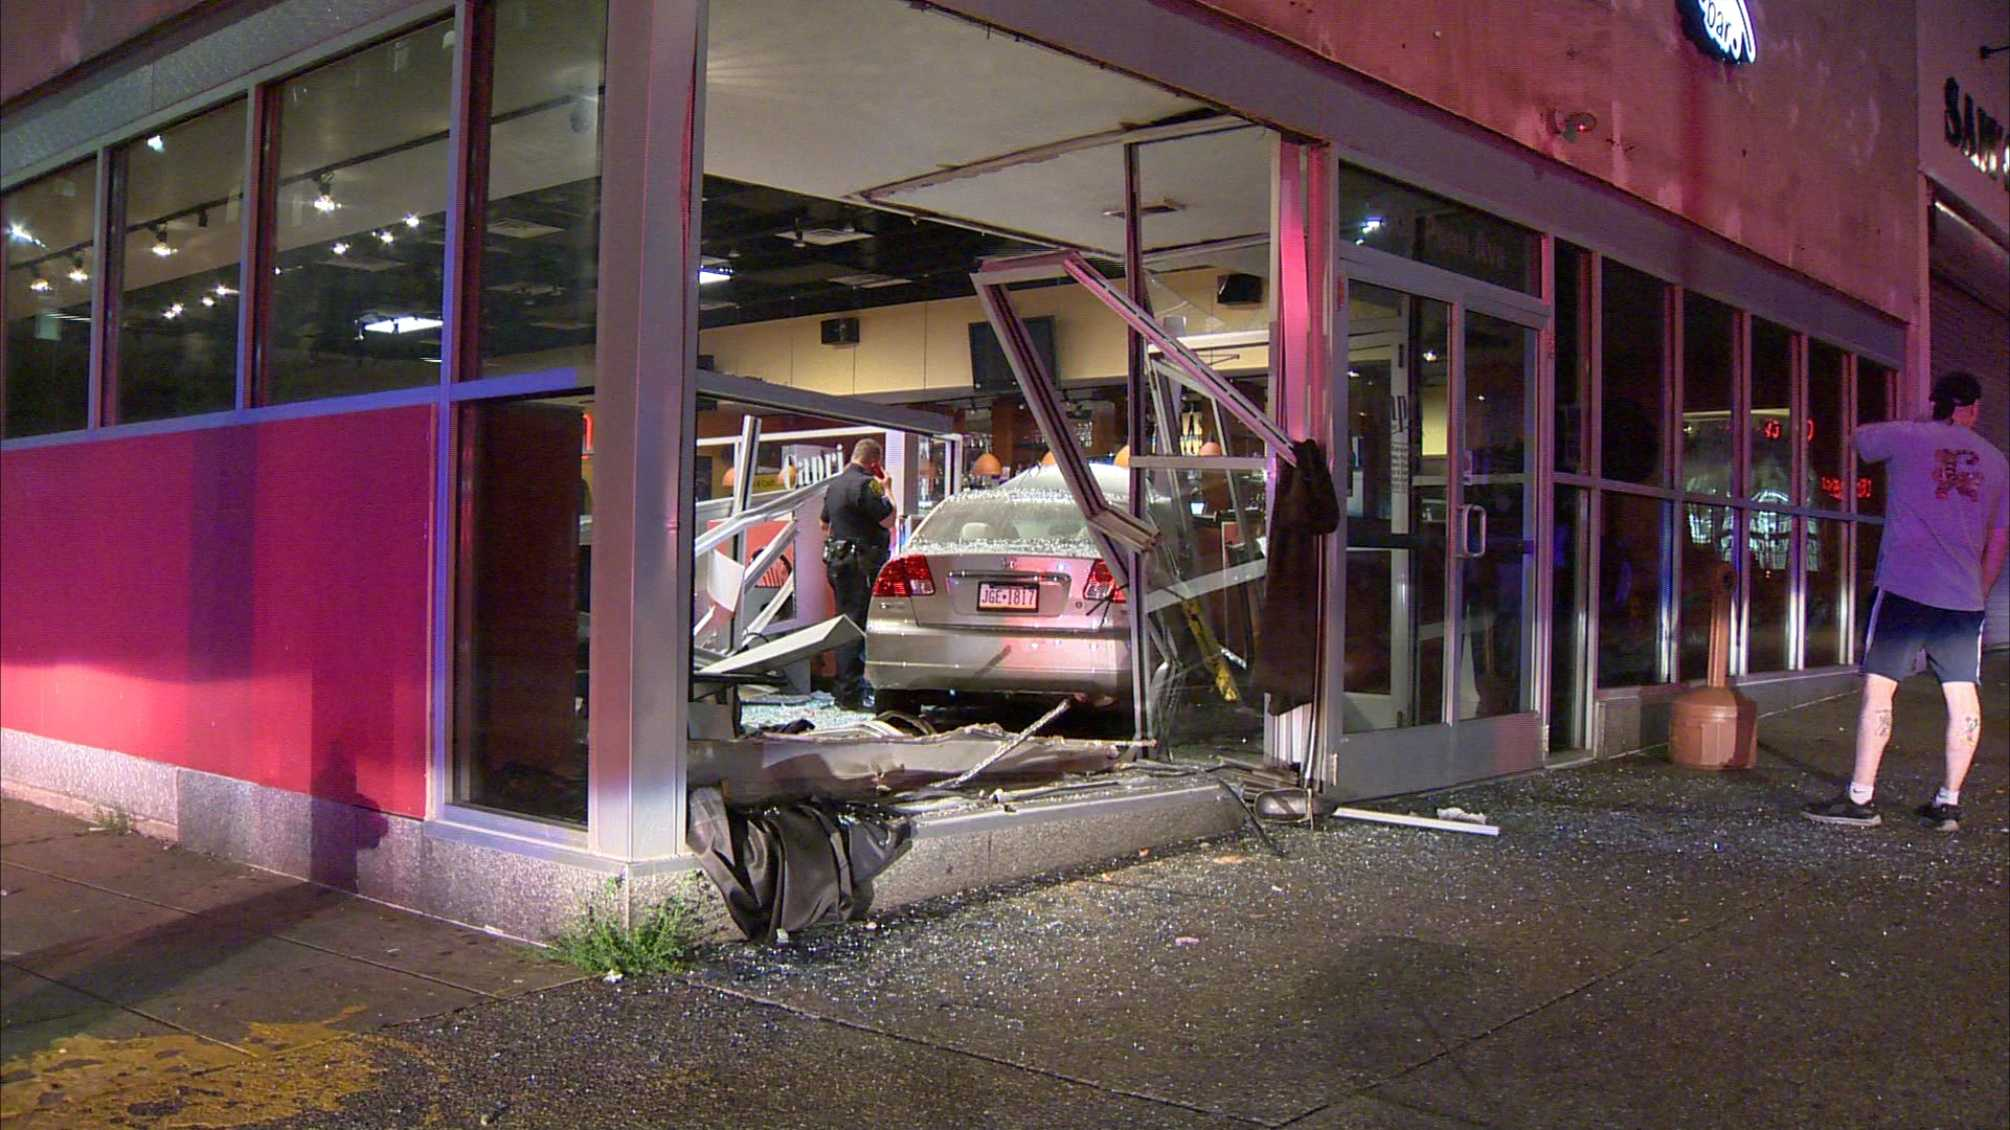 A car crashed into Capri Pizzeria & Bar on Penn Avenue in East Liberty.